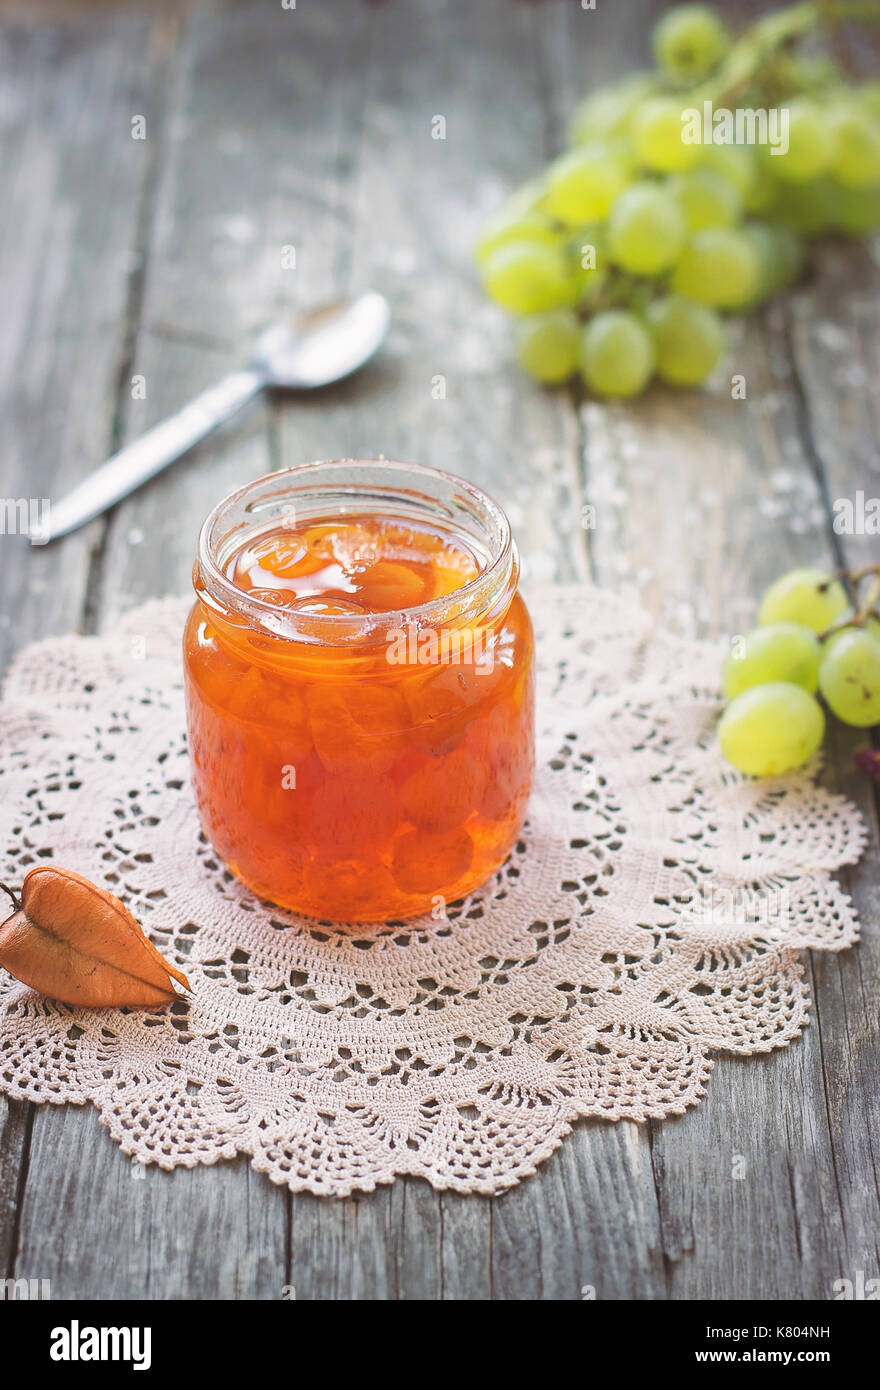 Slatko - preserved white grapes in glass jar, on wooden background; traditional serbian desert of white grapes or Stock Photo